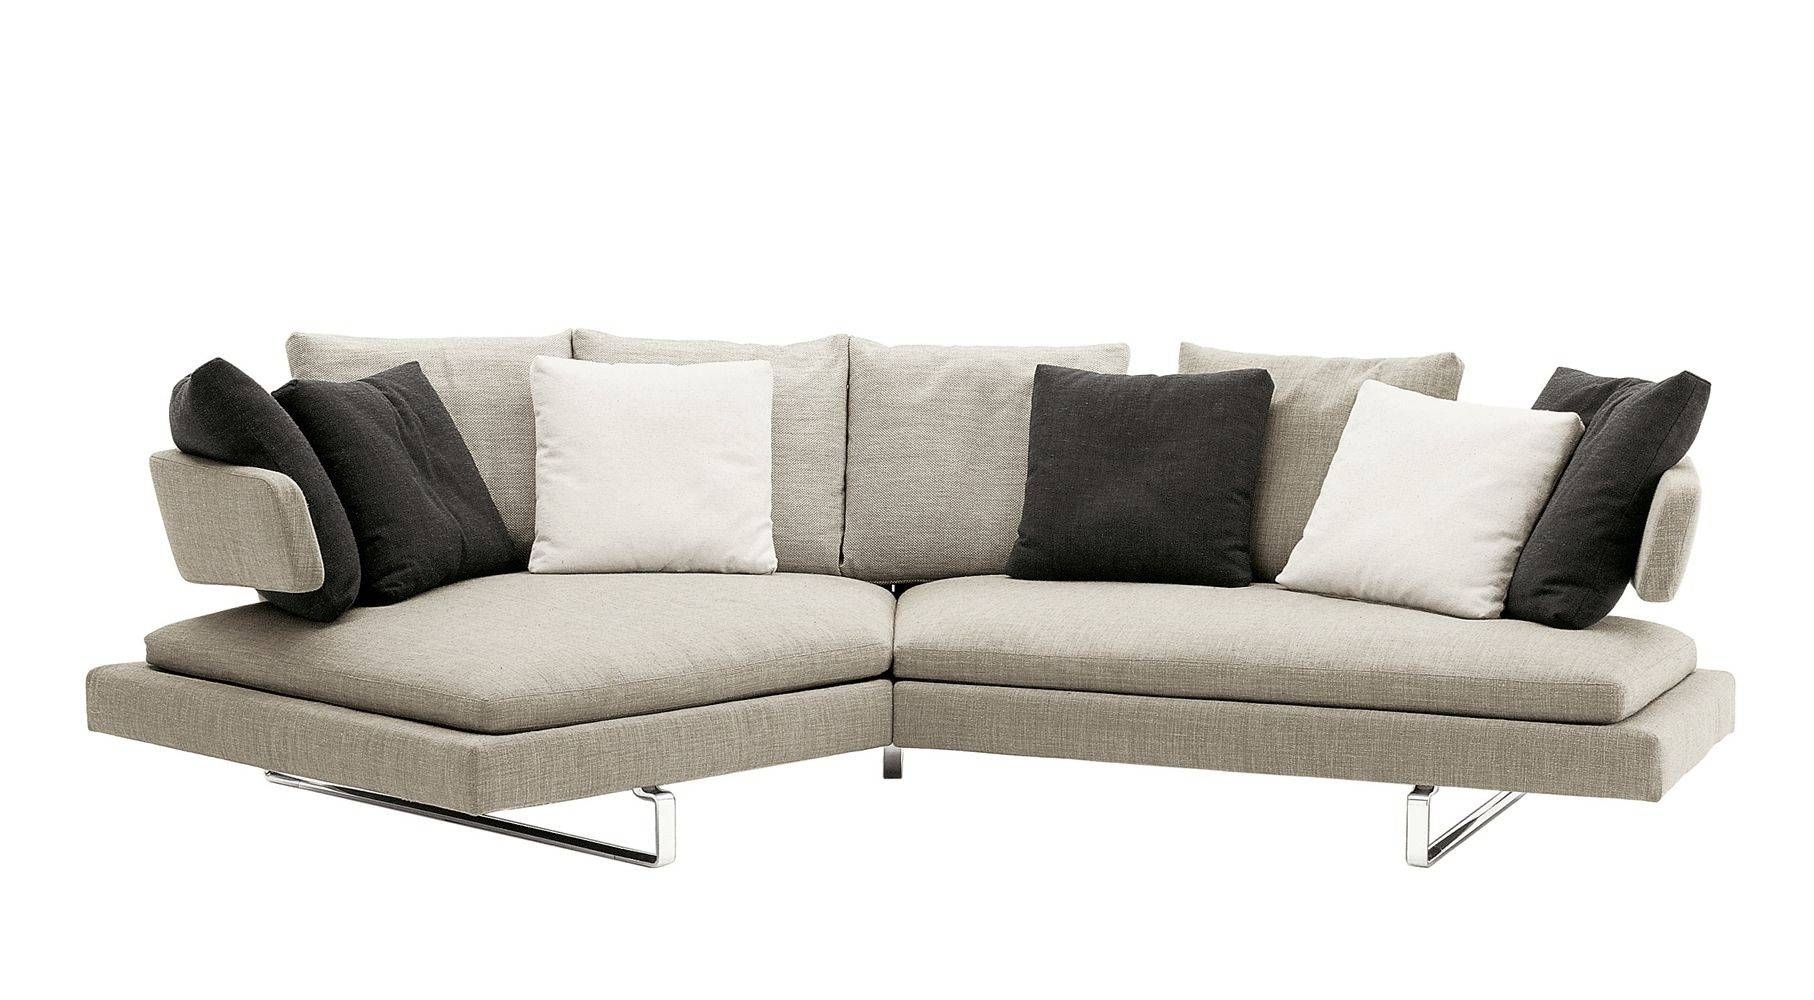 Semicircular Sofa / Contemporary / Leather / Fabric - Arne - B&b throughout Semicircular Sofa (Image 20 of 30)